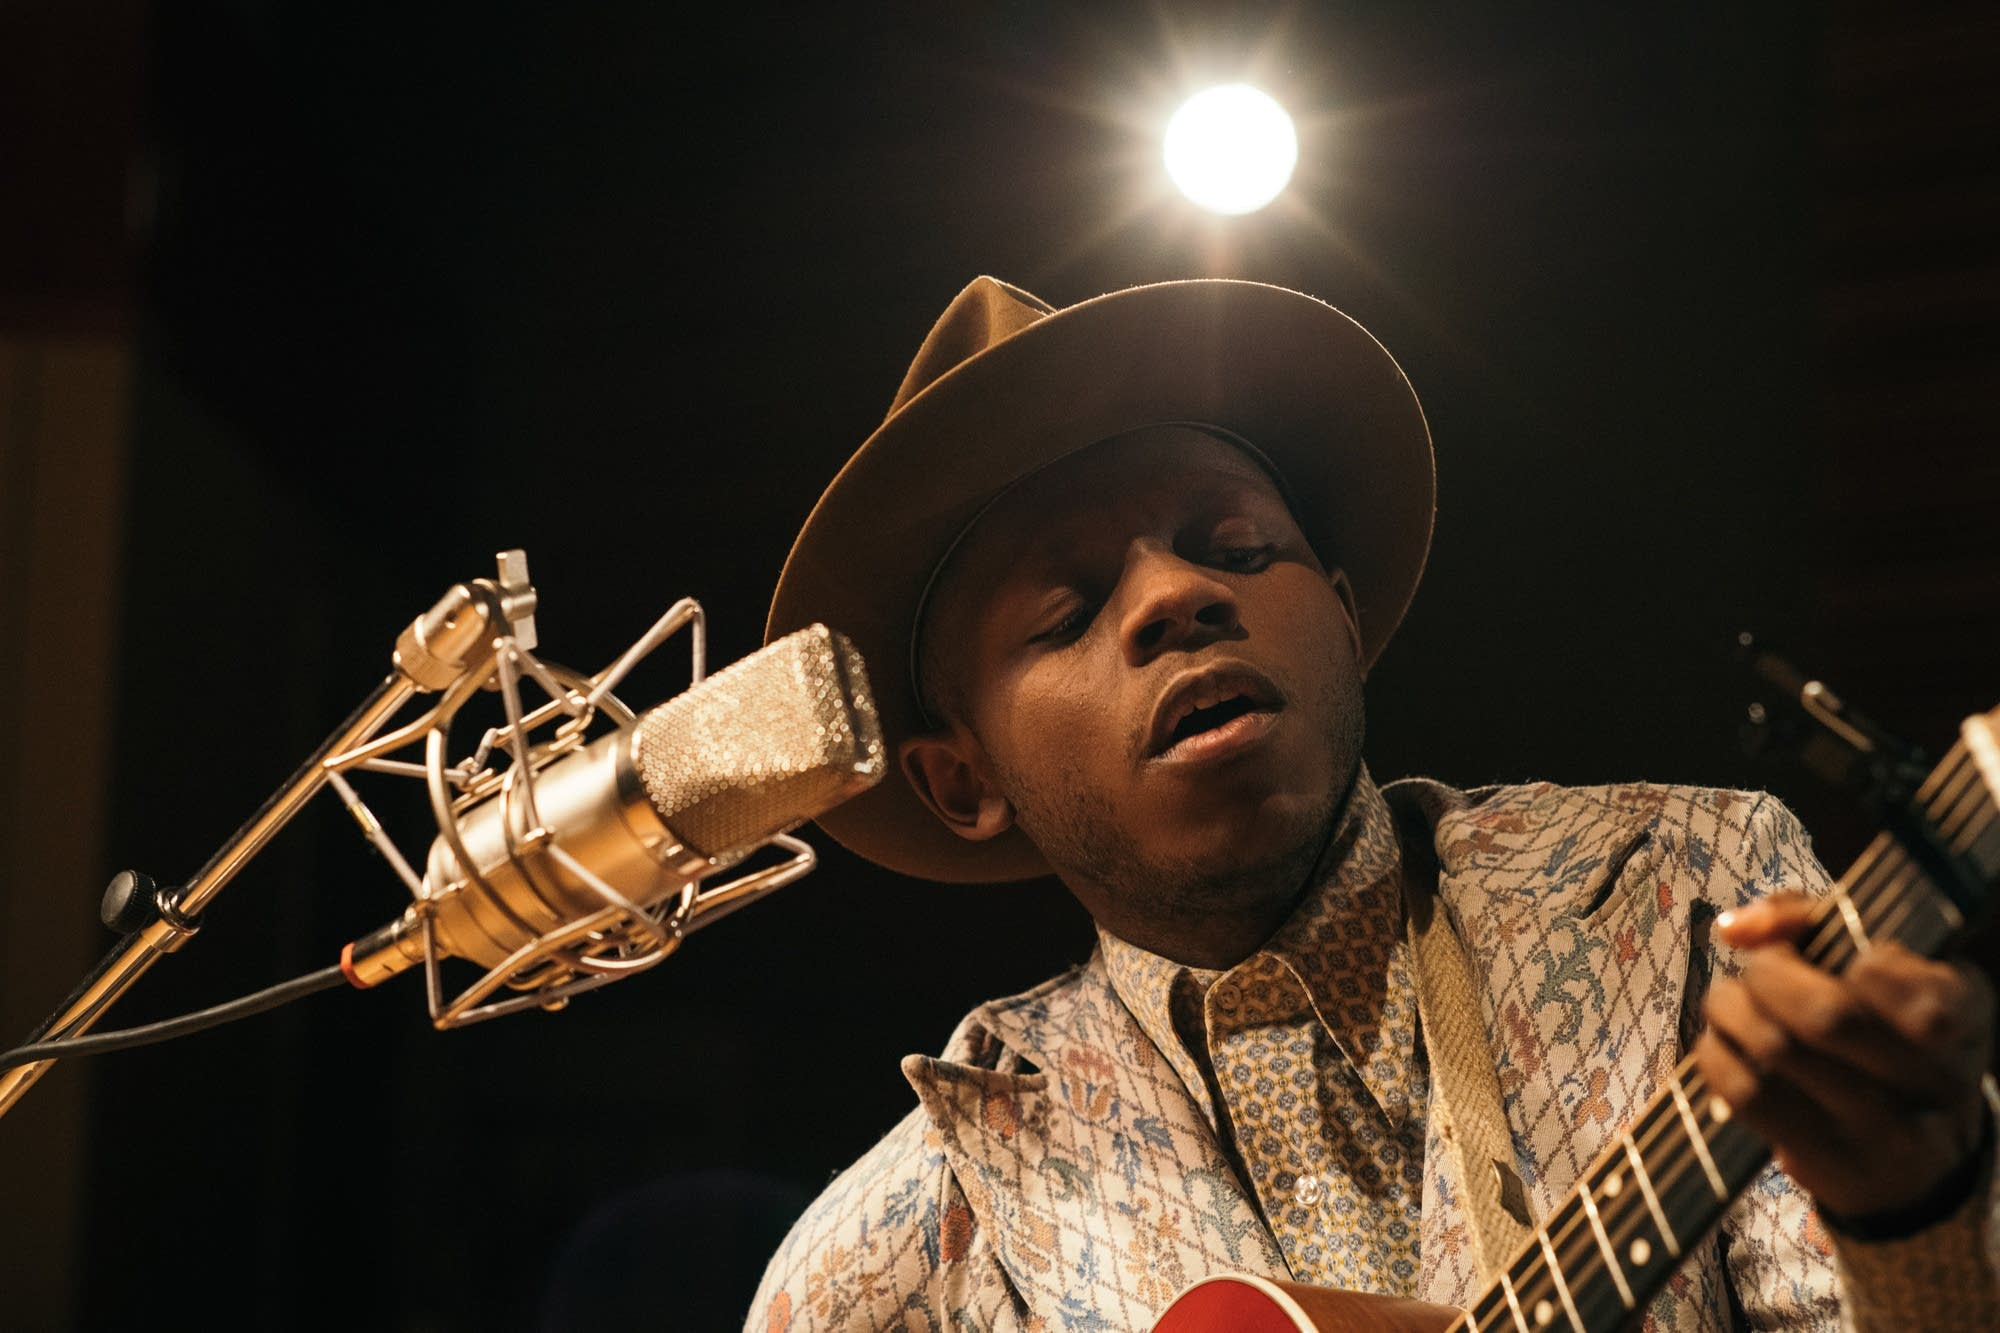 J.S. Ondara performs in The Current studio